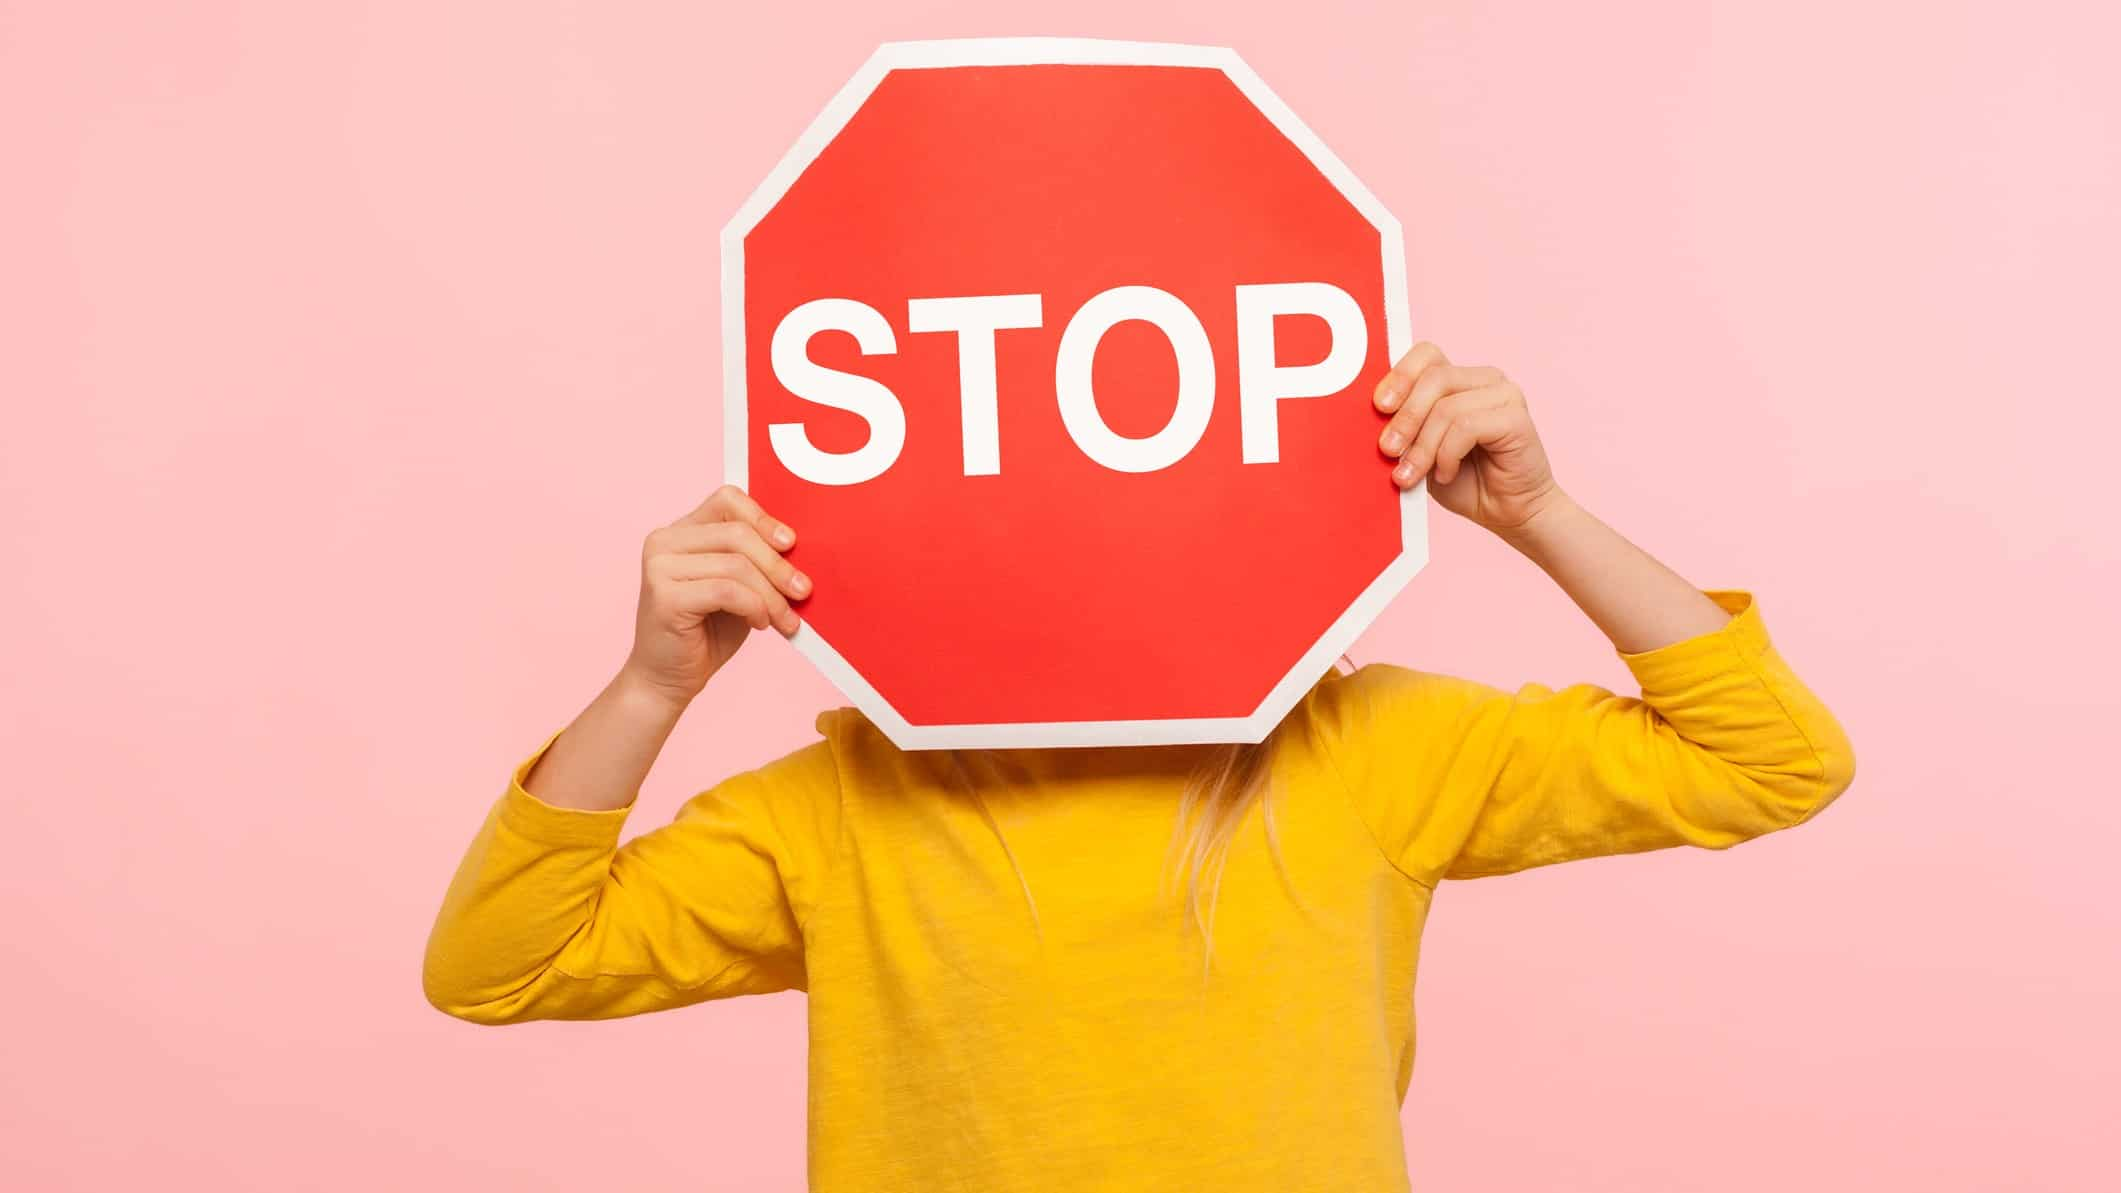 A person holds a stop sign in front of their head